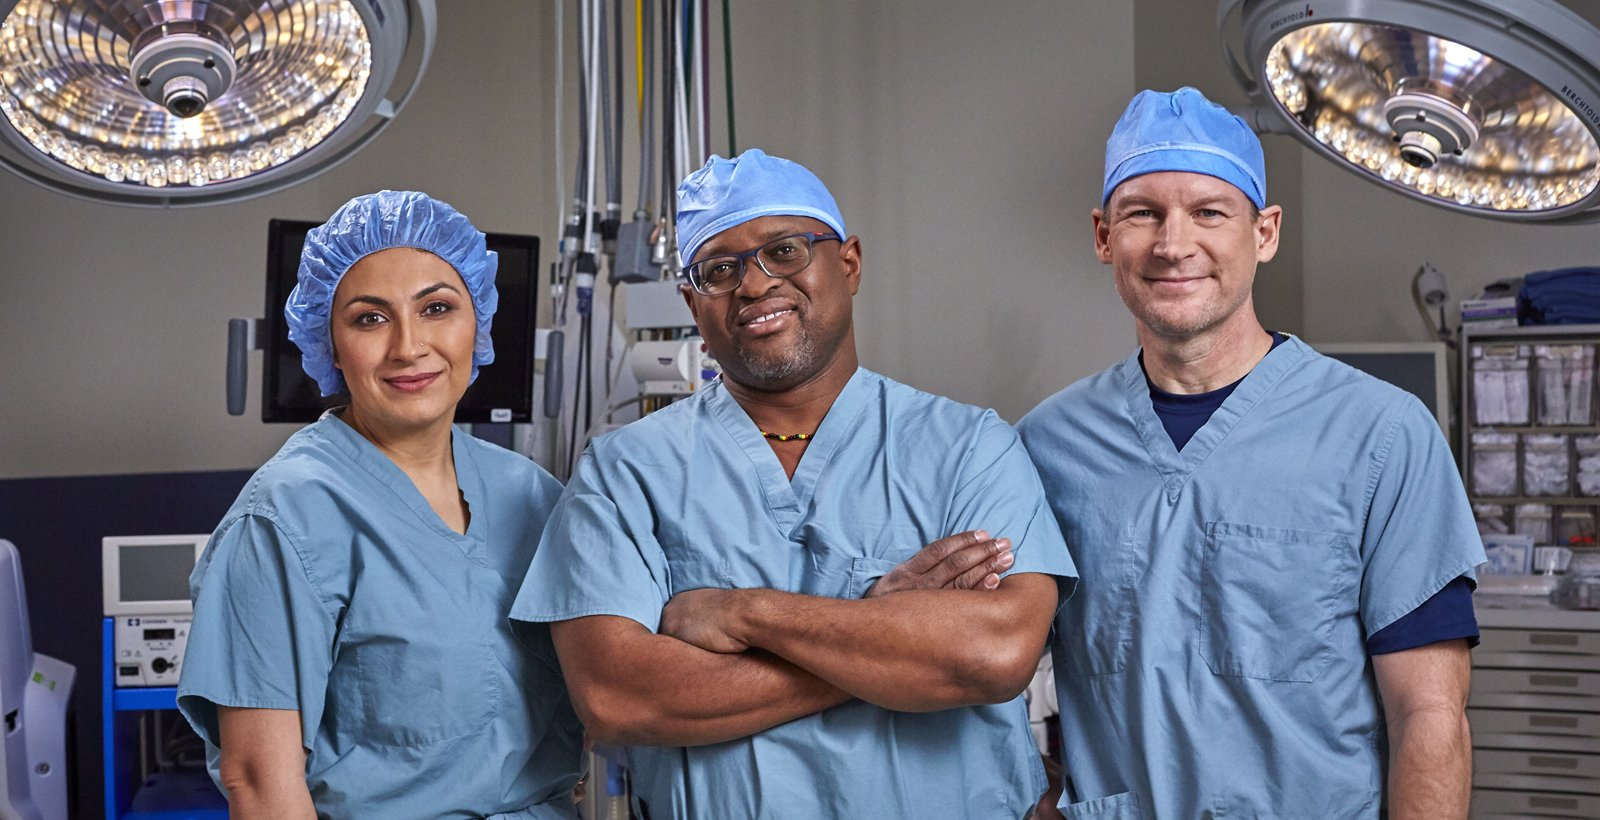 Drs. Ahad, Reid & Smith in the operating room